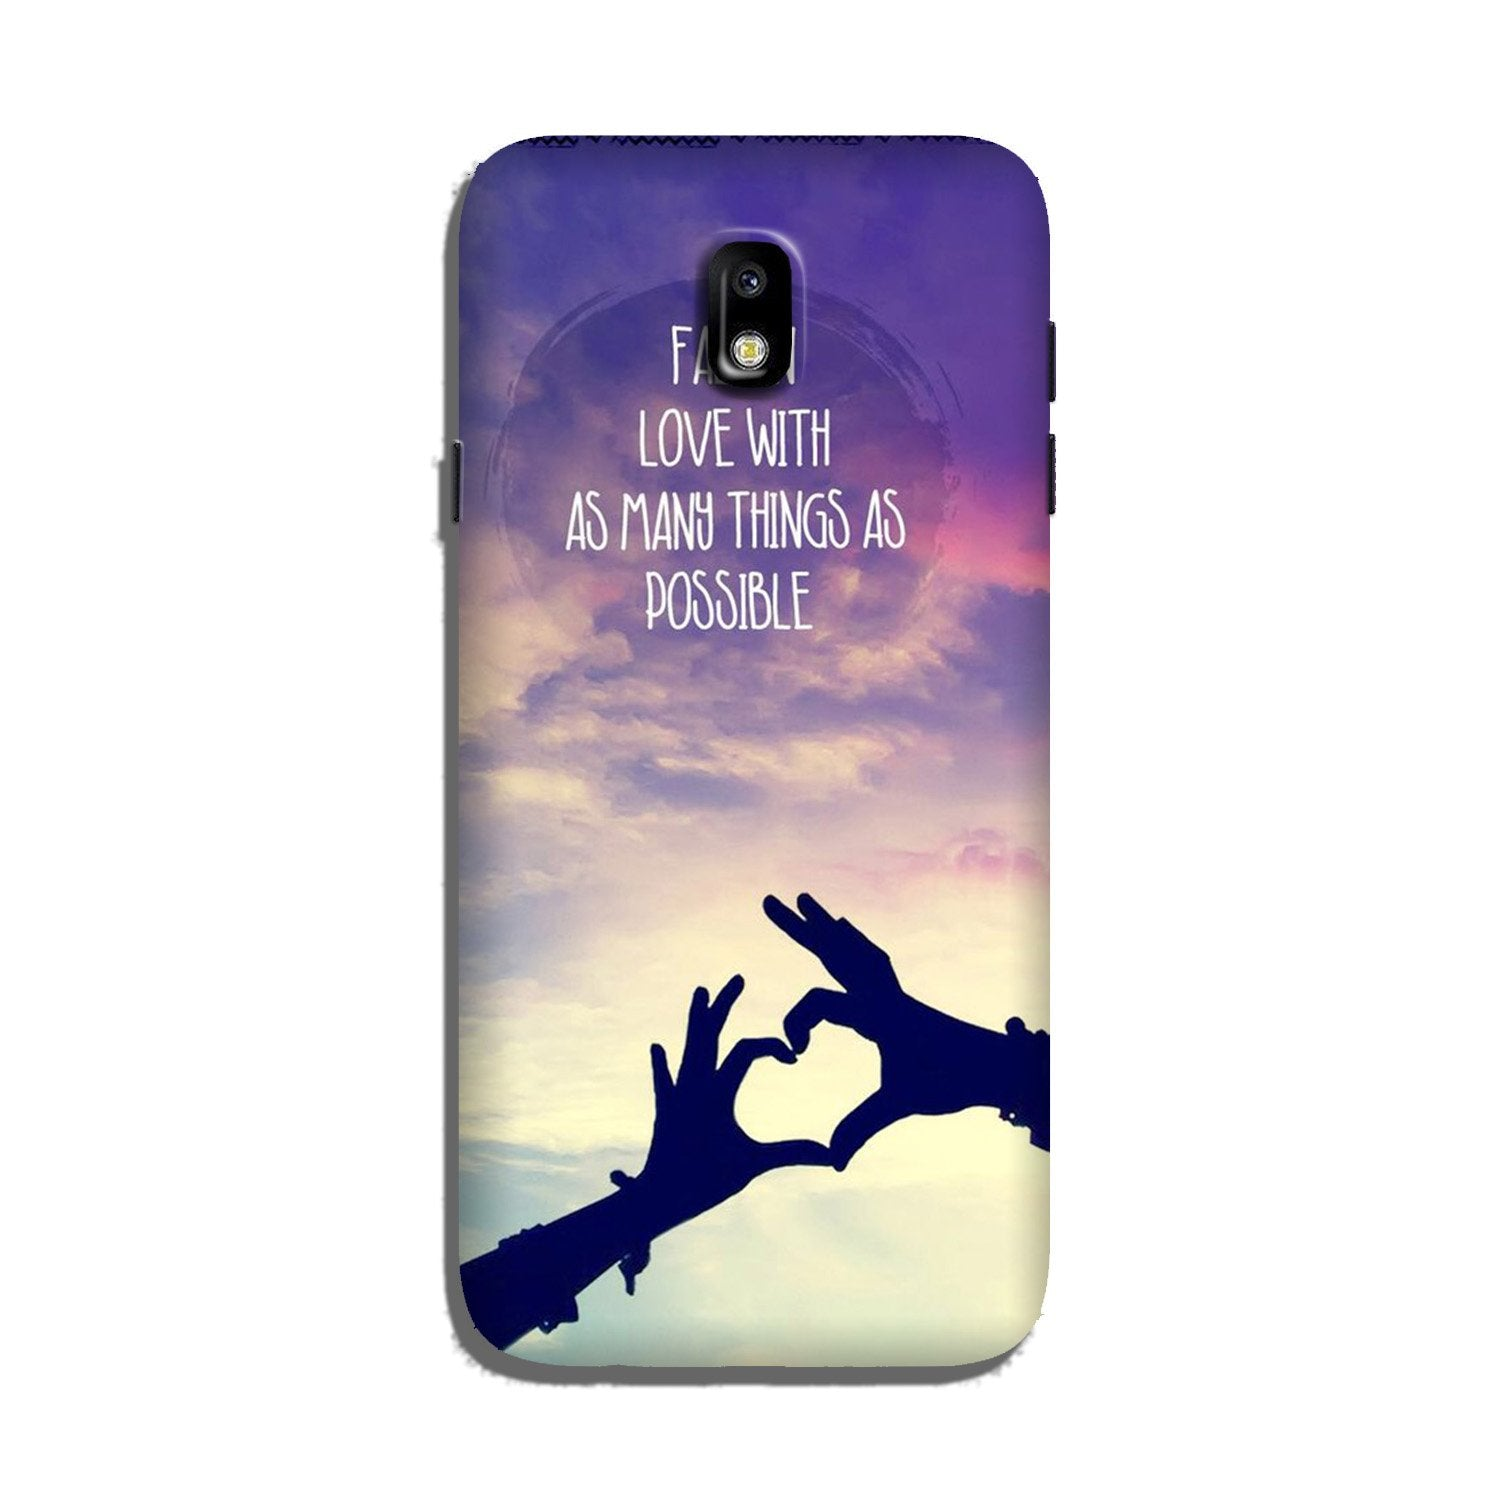 Fall in love Case for Galaxy J7 Pro